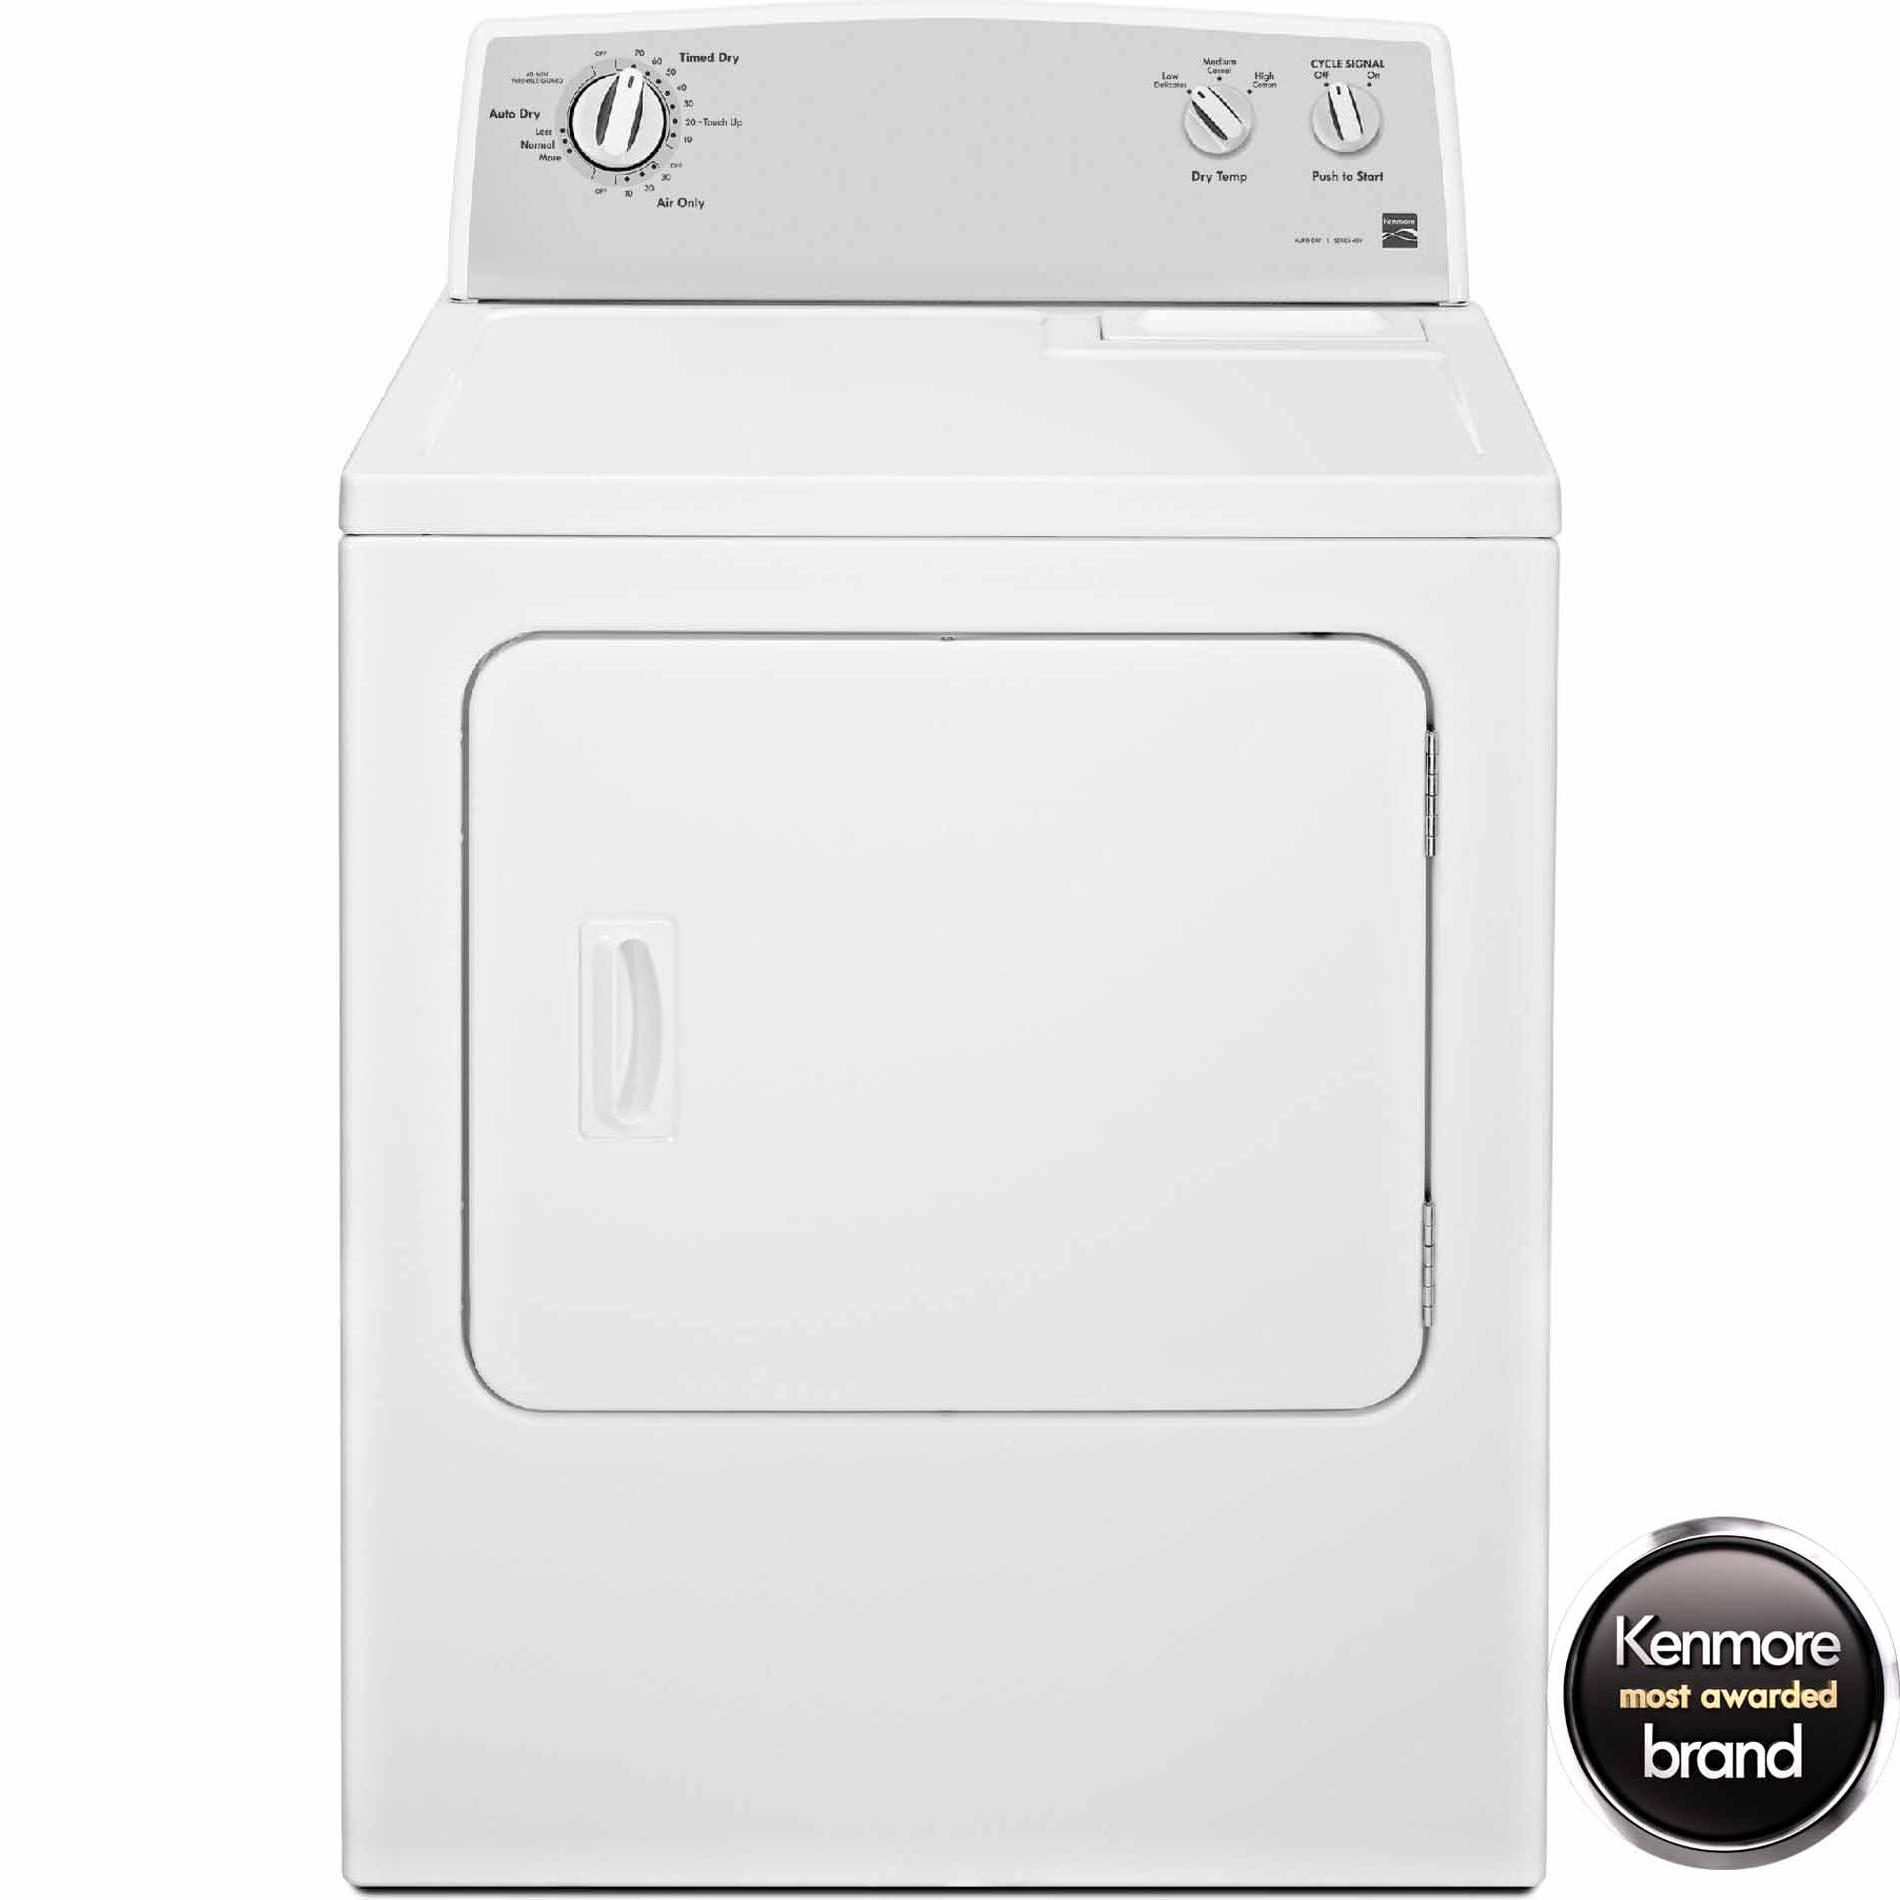 Kenmore 7.0 cu. ft. Electric Dryer w/ Auto Dry - White